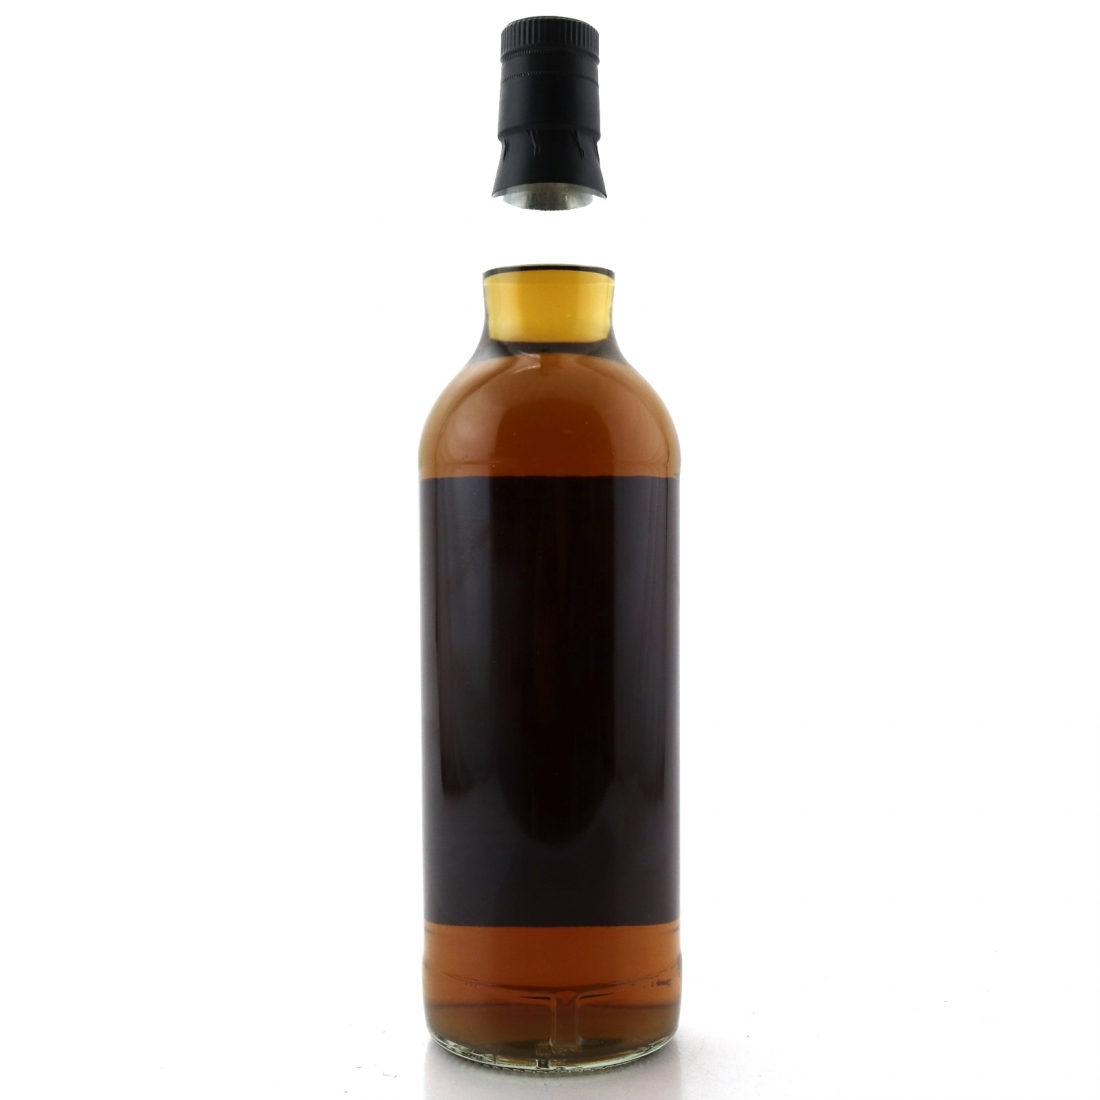 Glenallachie 1973 Whisky Agency 38 Year Old